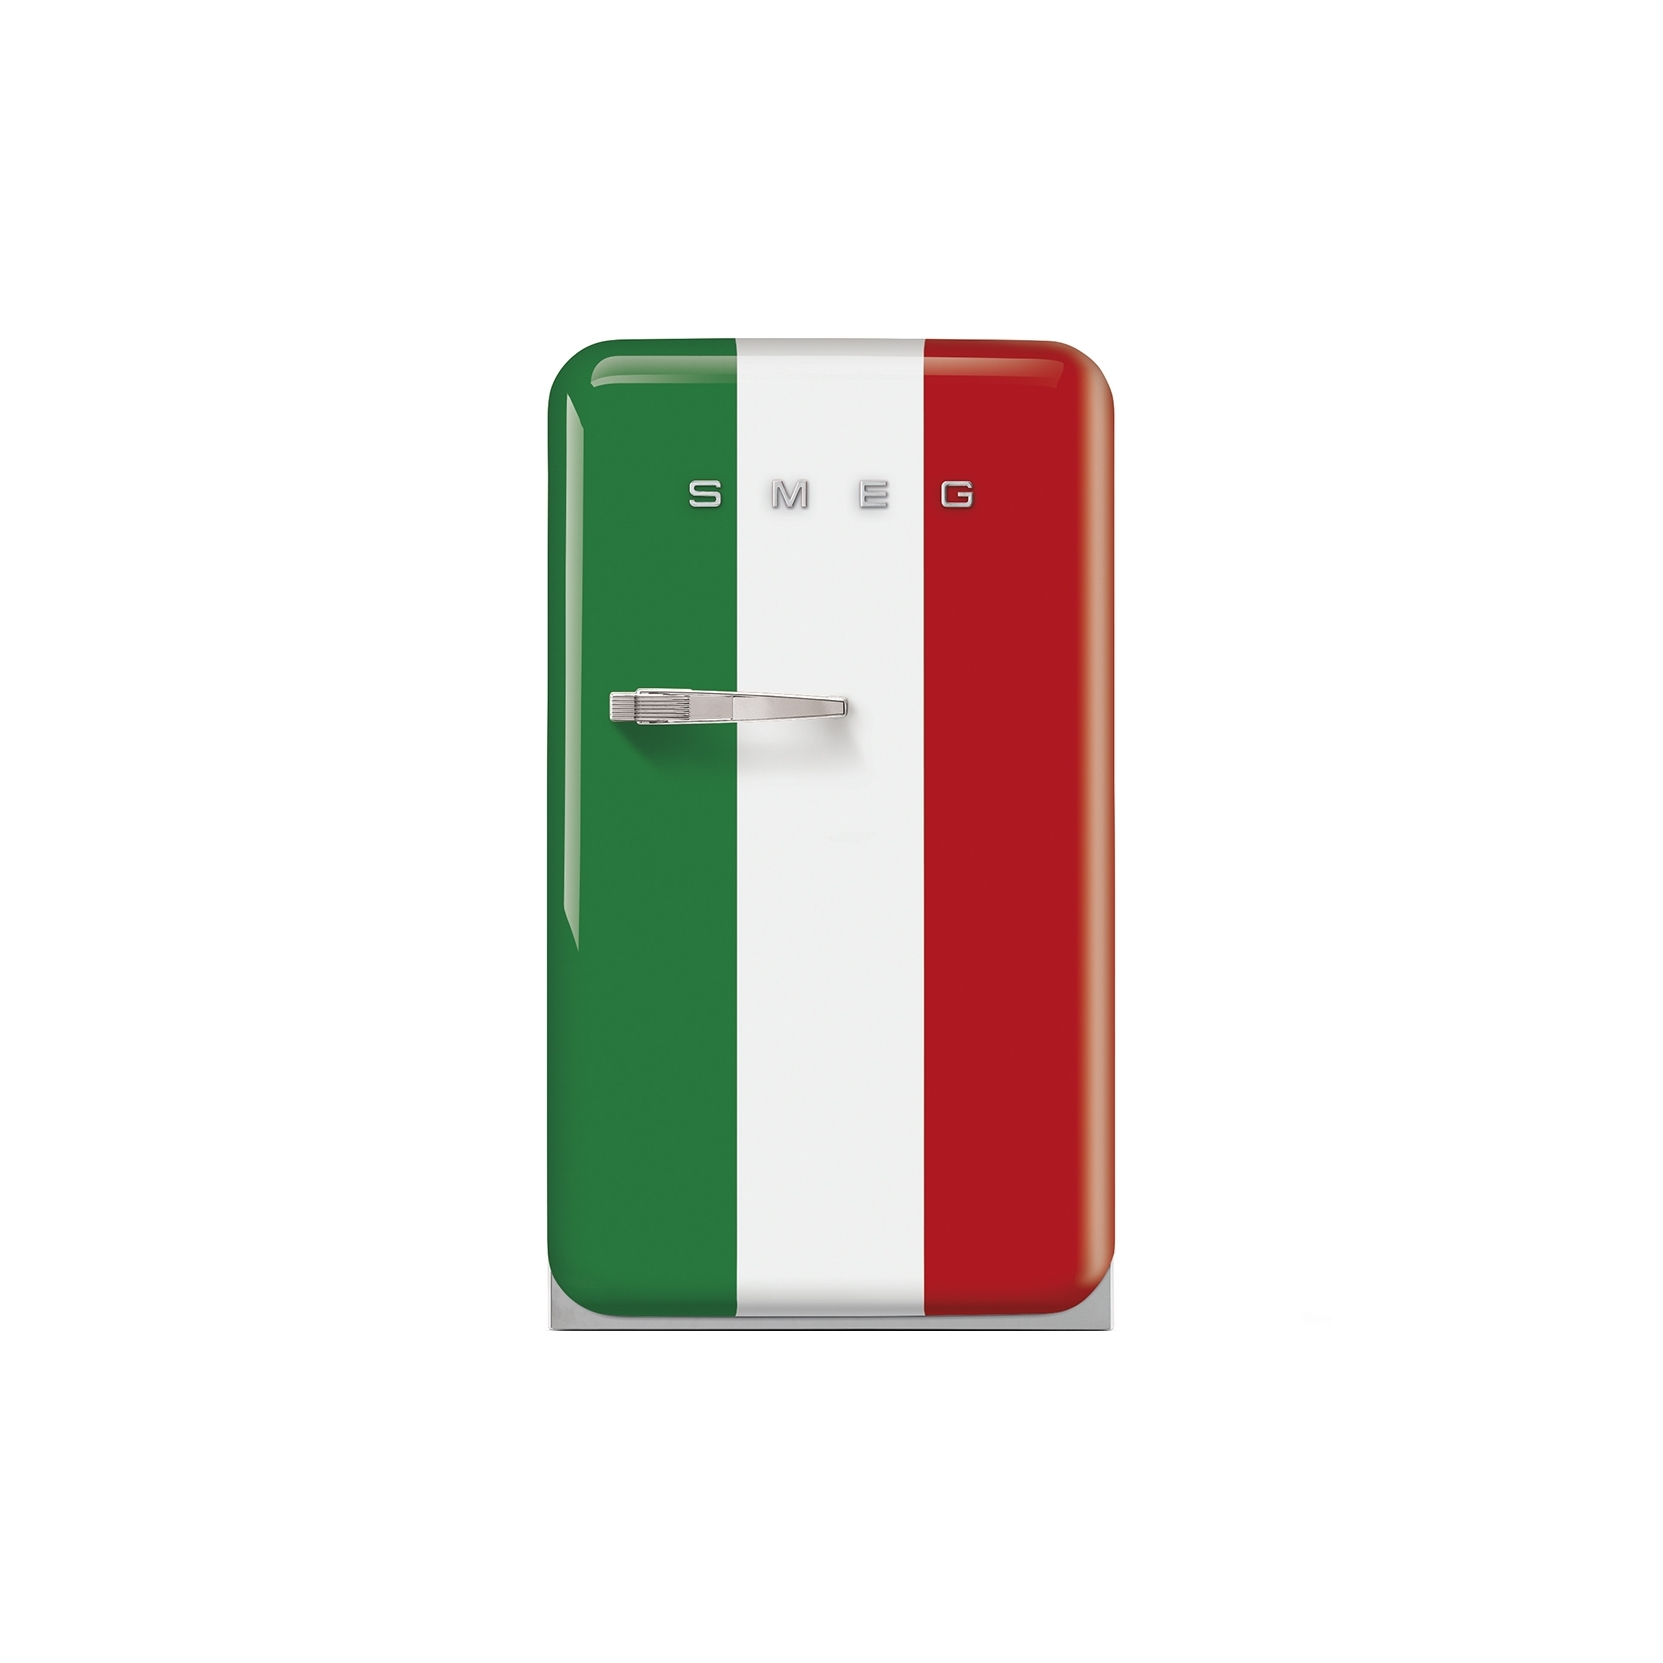 Smeg Fridge Italian Flag 50 S Retro Style Tattahome